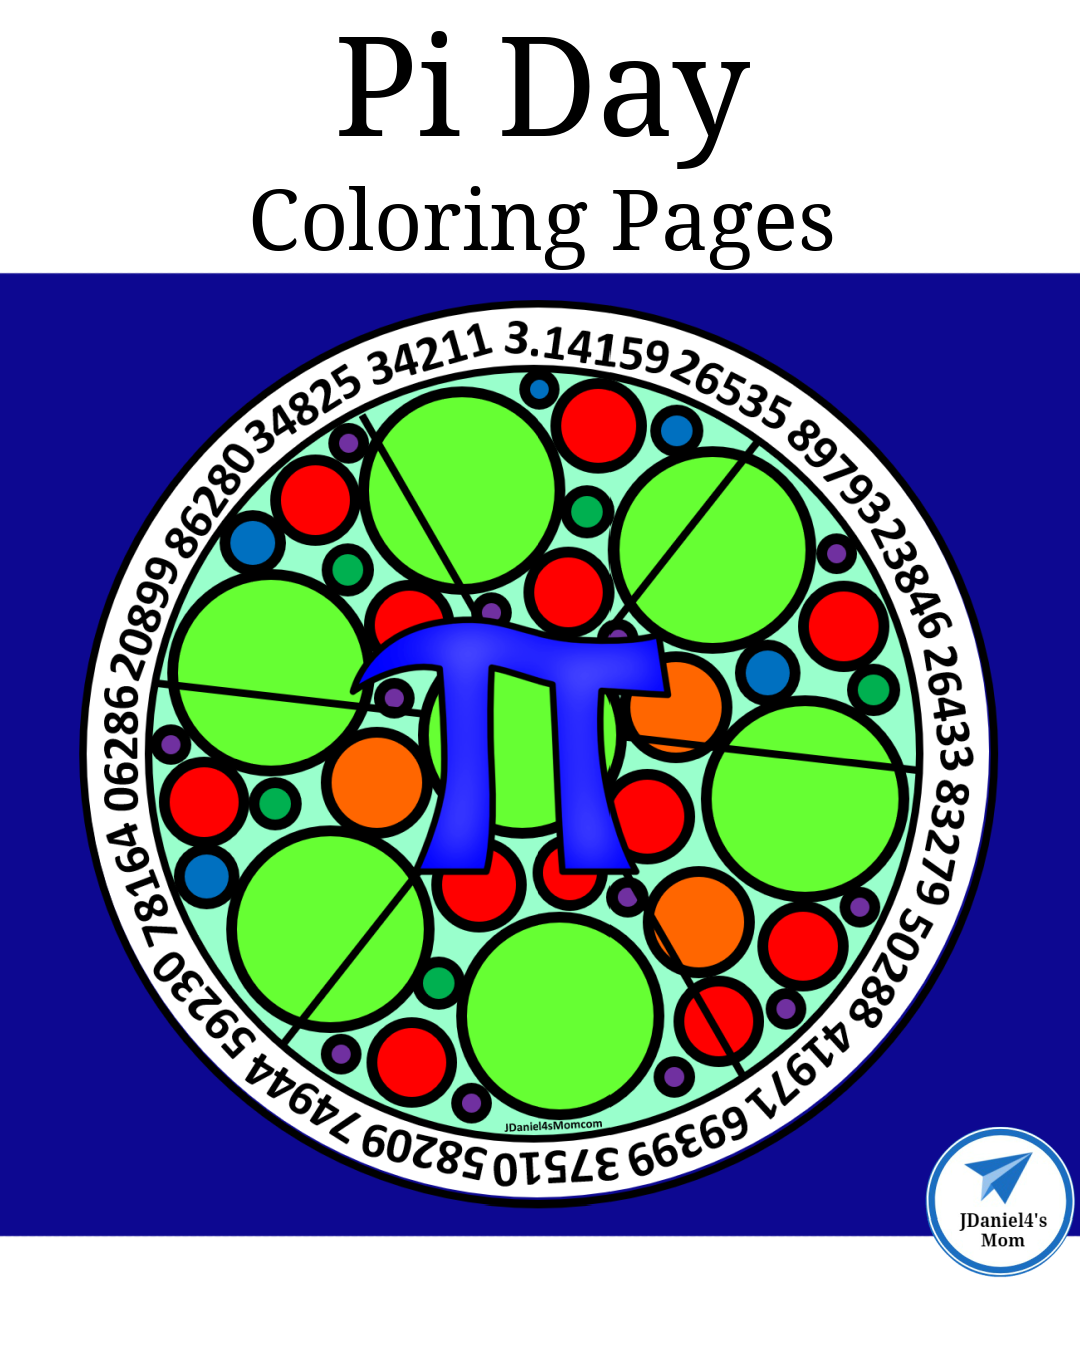 Pi Day Coloring Pages Jdaniel4s Mom In 2021 Printable Activities For Kids Math Activities For Kids Early Learning Math [ 1350 x 1080 Pixel ]